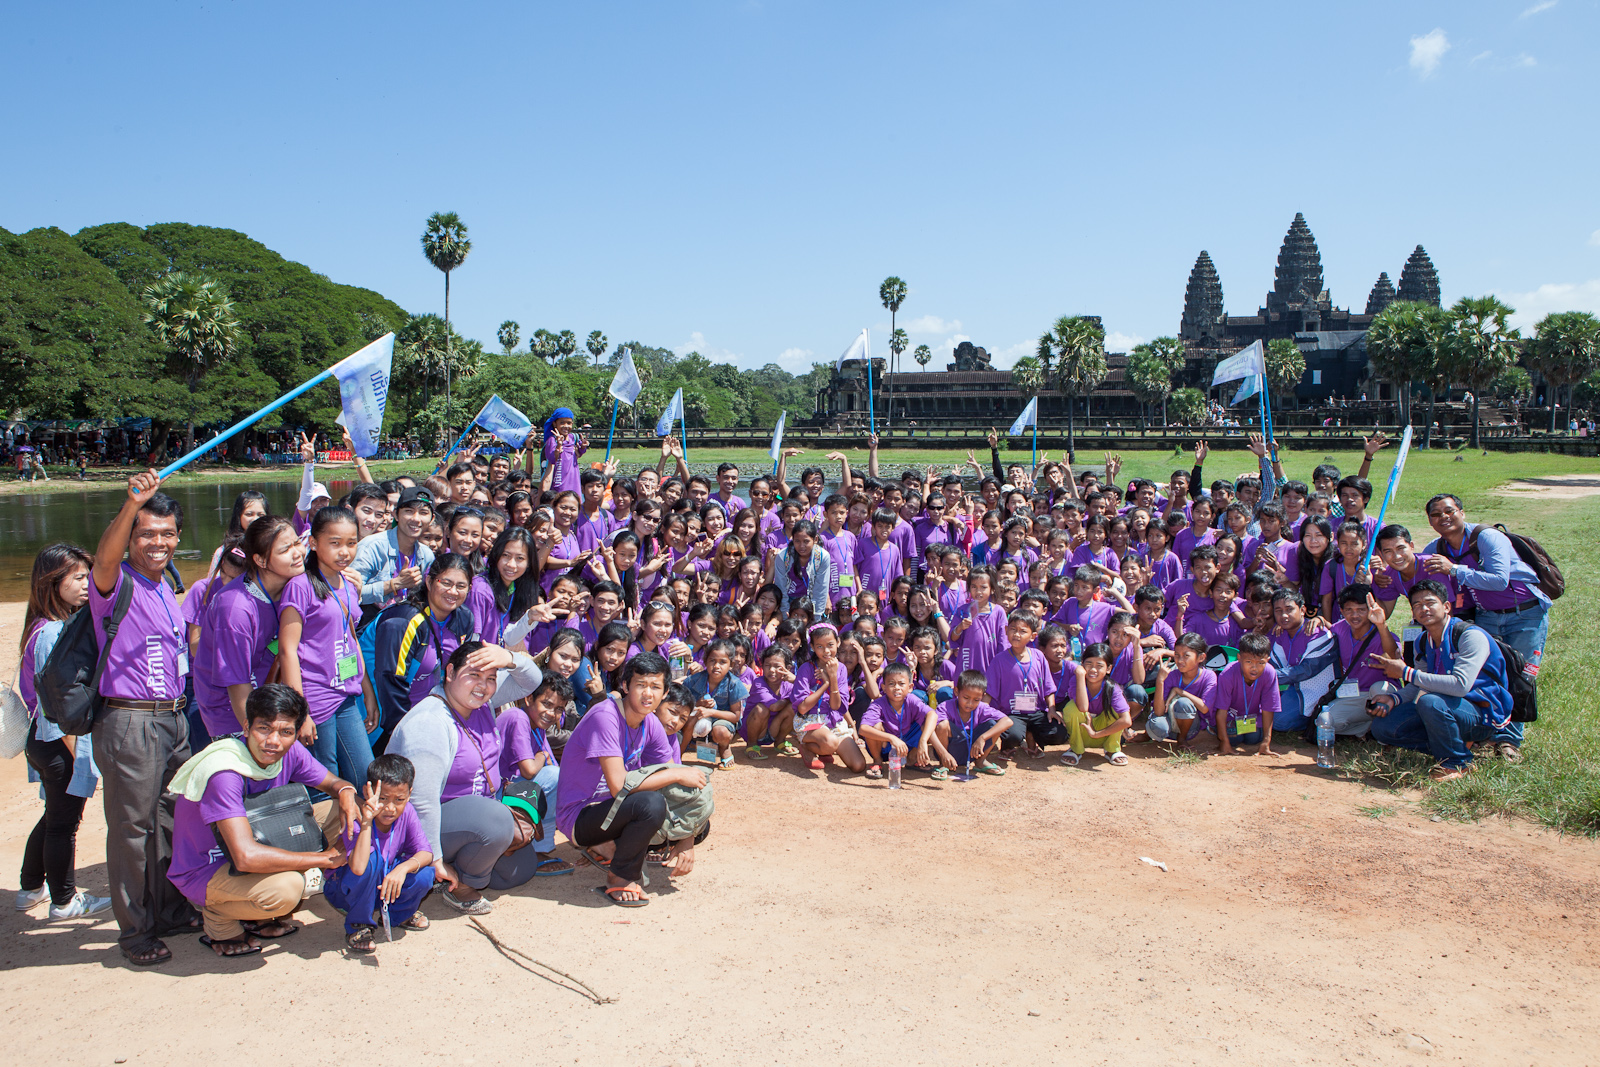 Alongsiders Camp 2014 at Angkor Wat